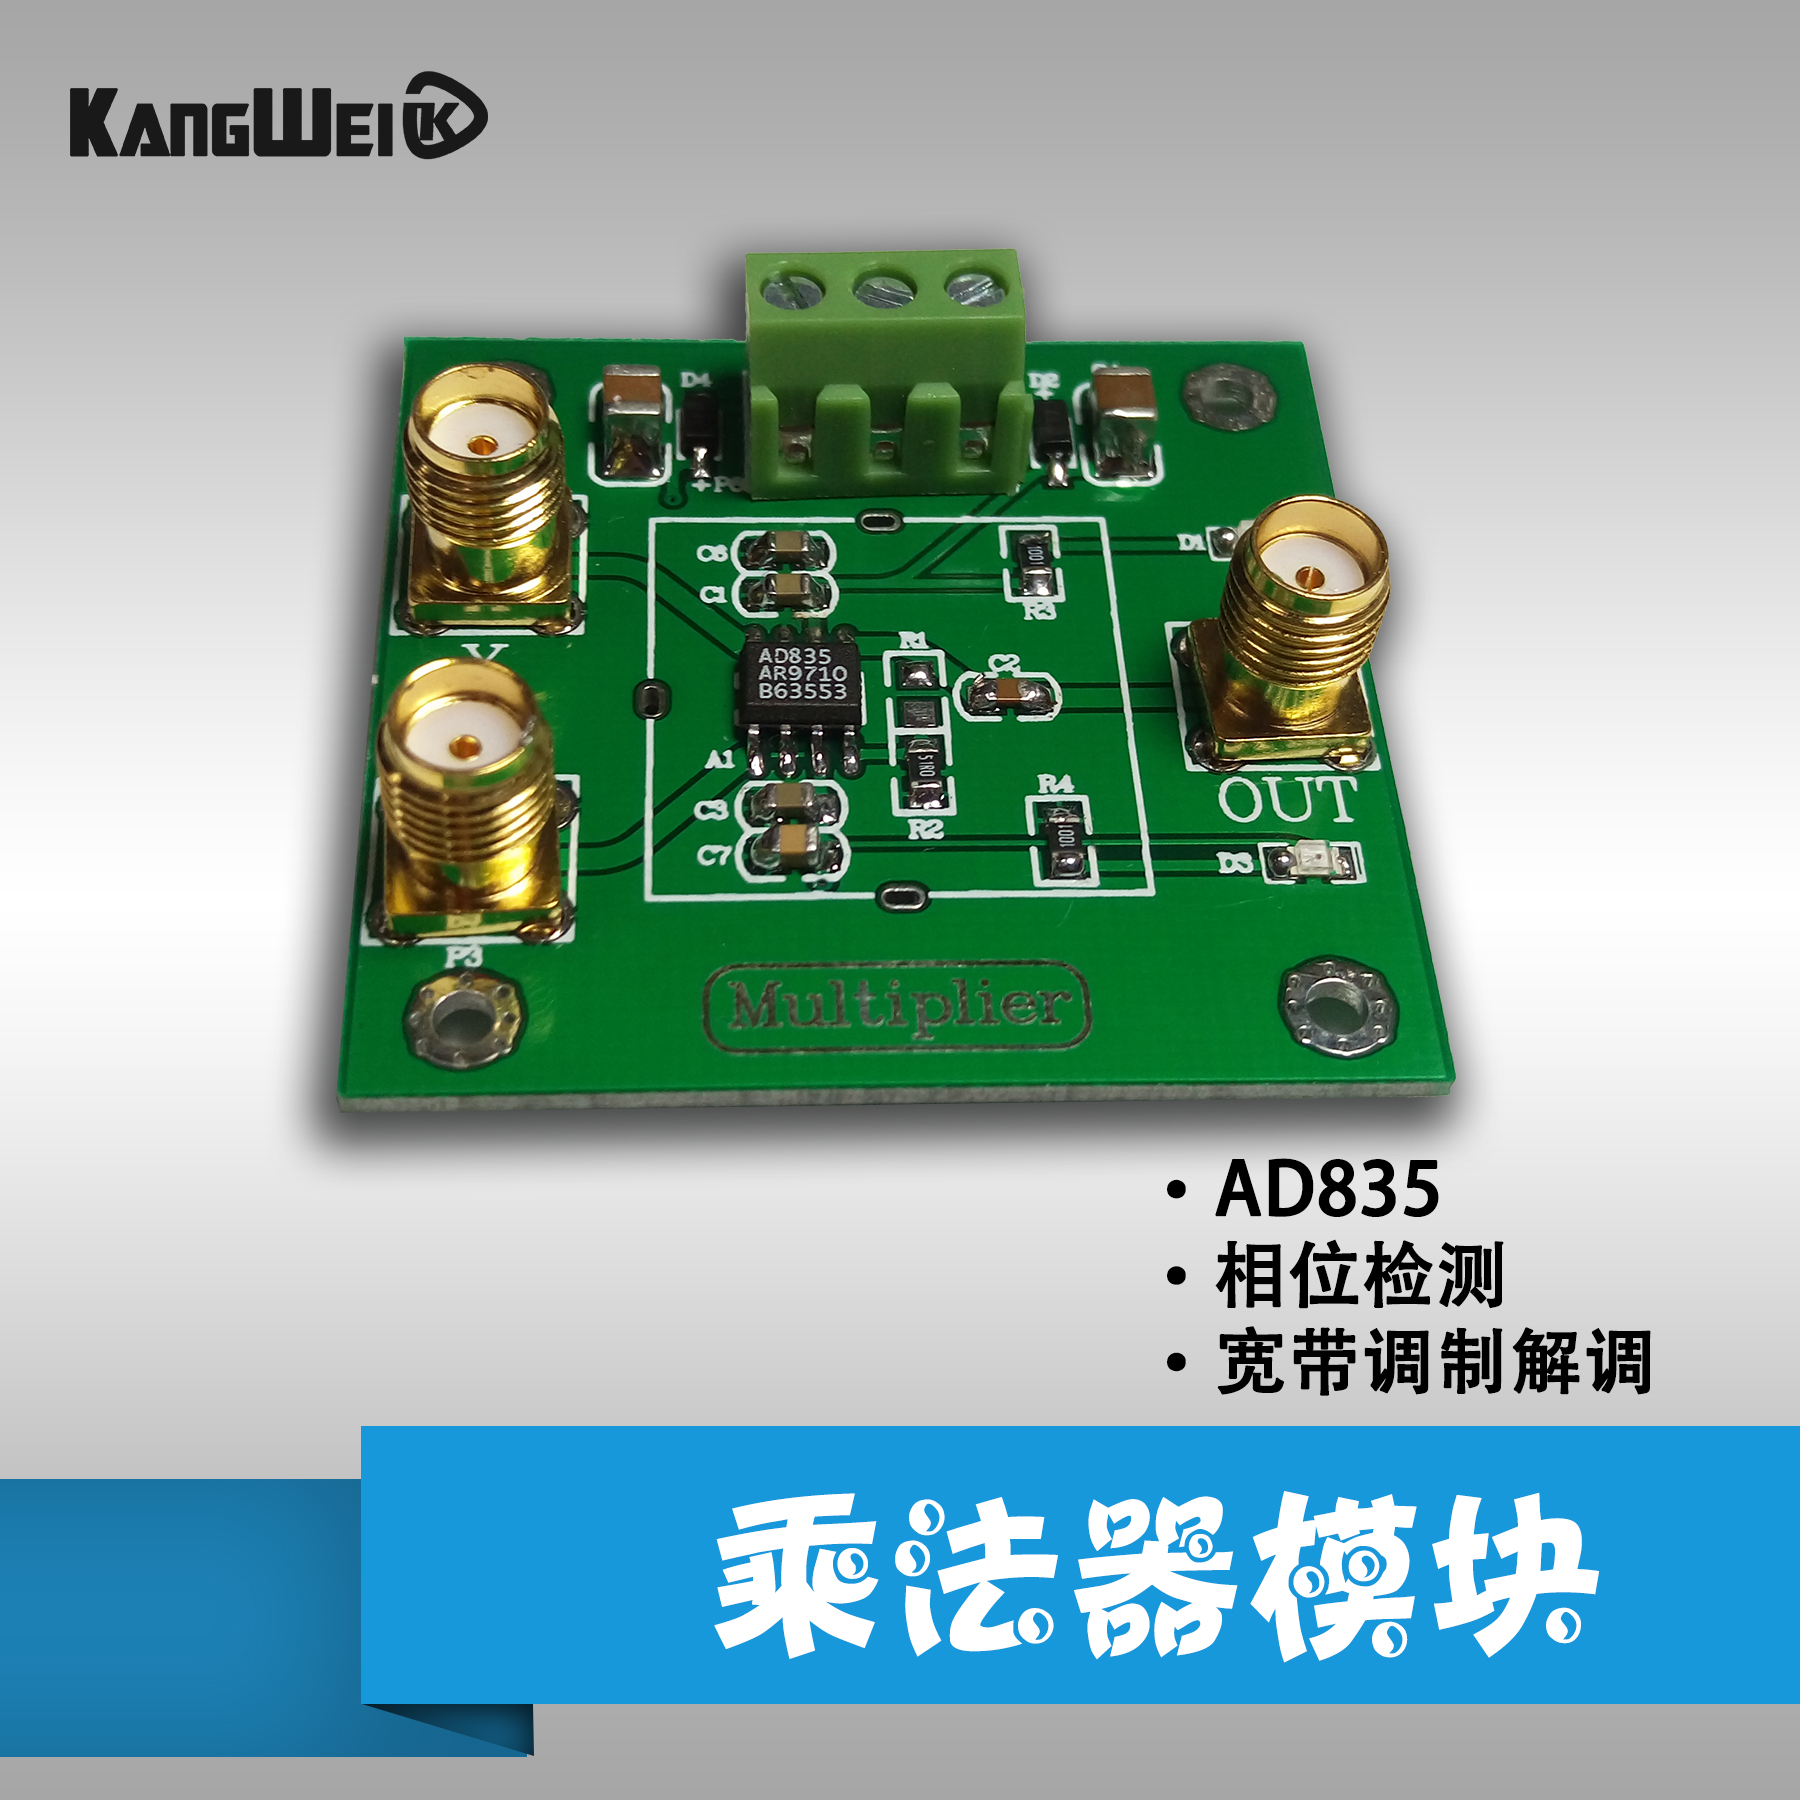 AD835 analog multiplier module, signal conditioning, phase detection, measurement, four quadrant multiplier, mixer<br>